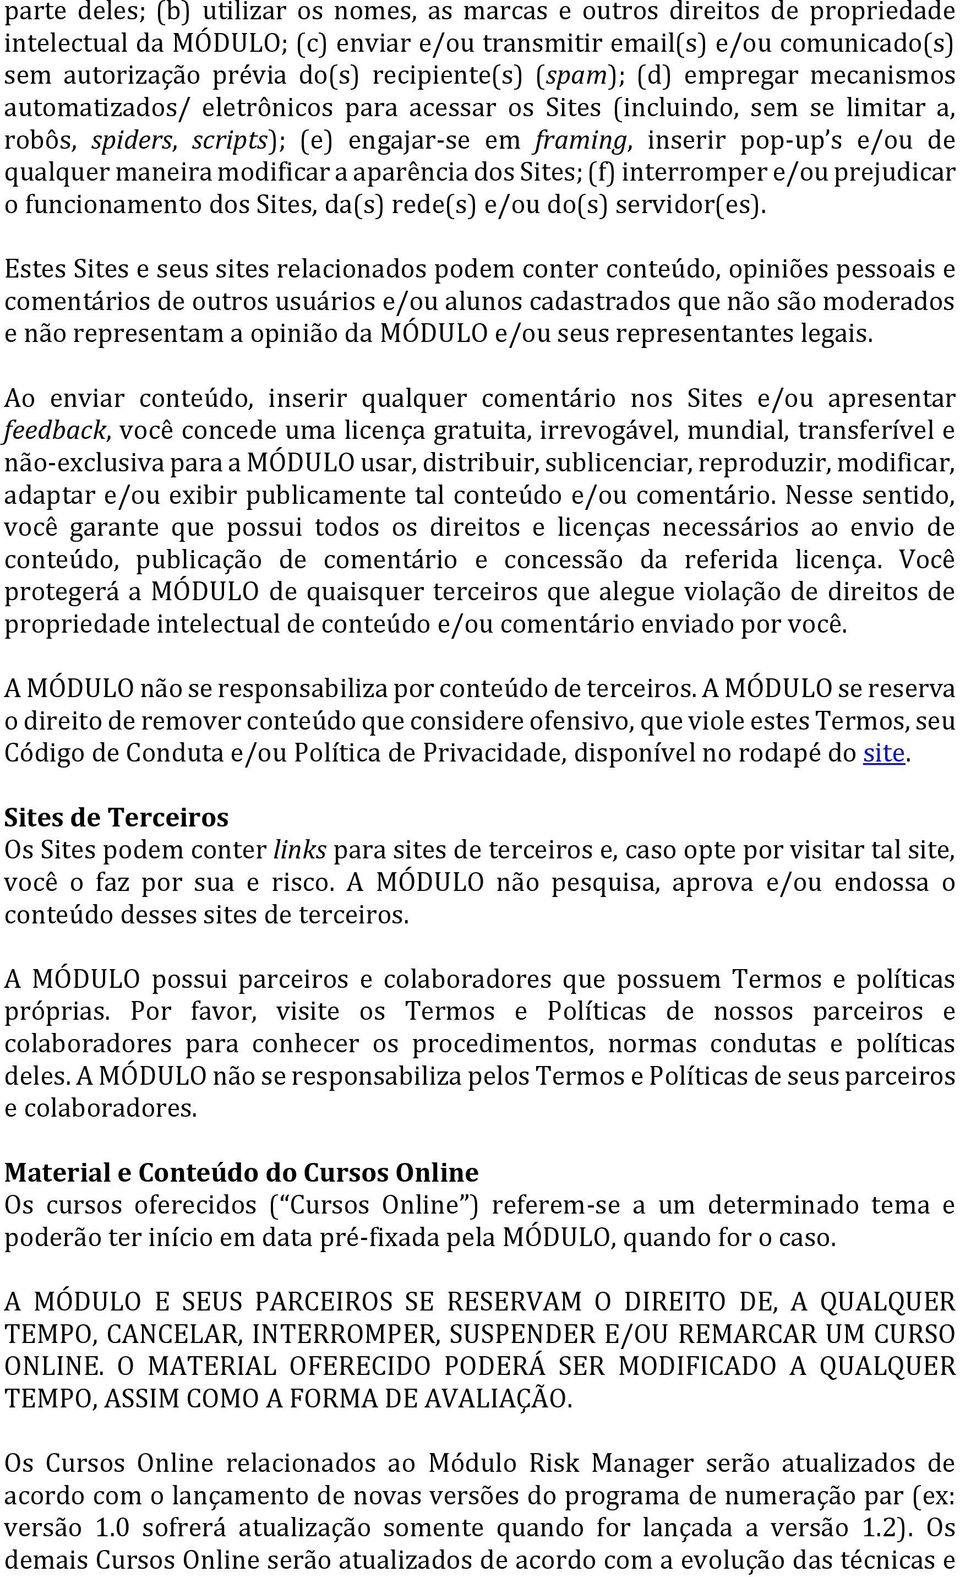 maneira modificar a aparência dos Sites; (f) interromper e/ou prejudicar o funcionamento dos Sites, da(s) rede(s) e/ou do(s) servidor(es).